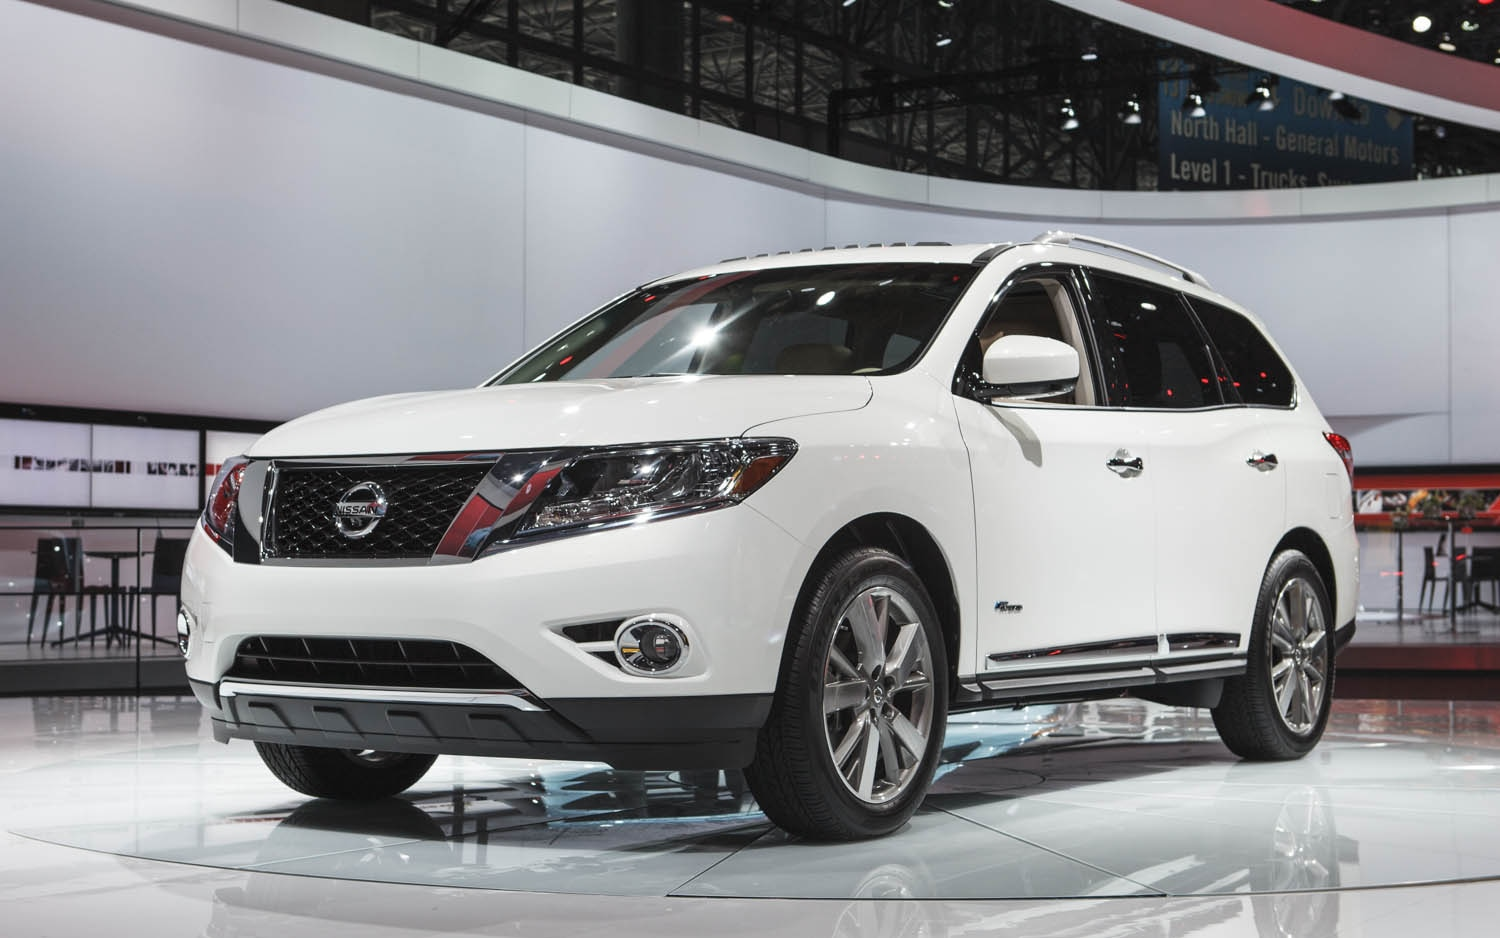 2014 Nissan Pathfinder Hybrid First Look - Automobile Magazine